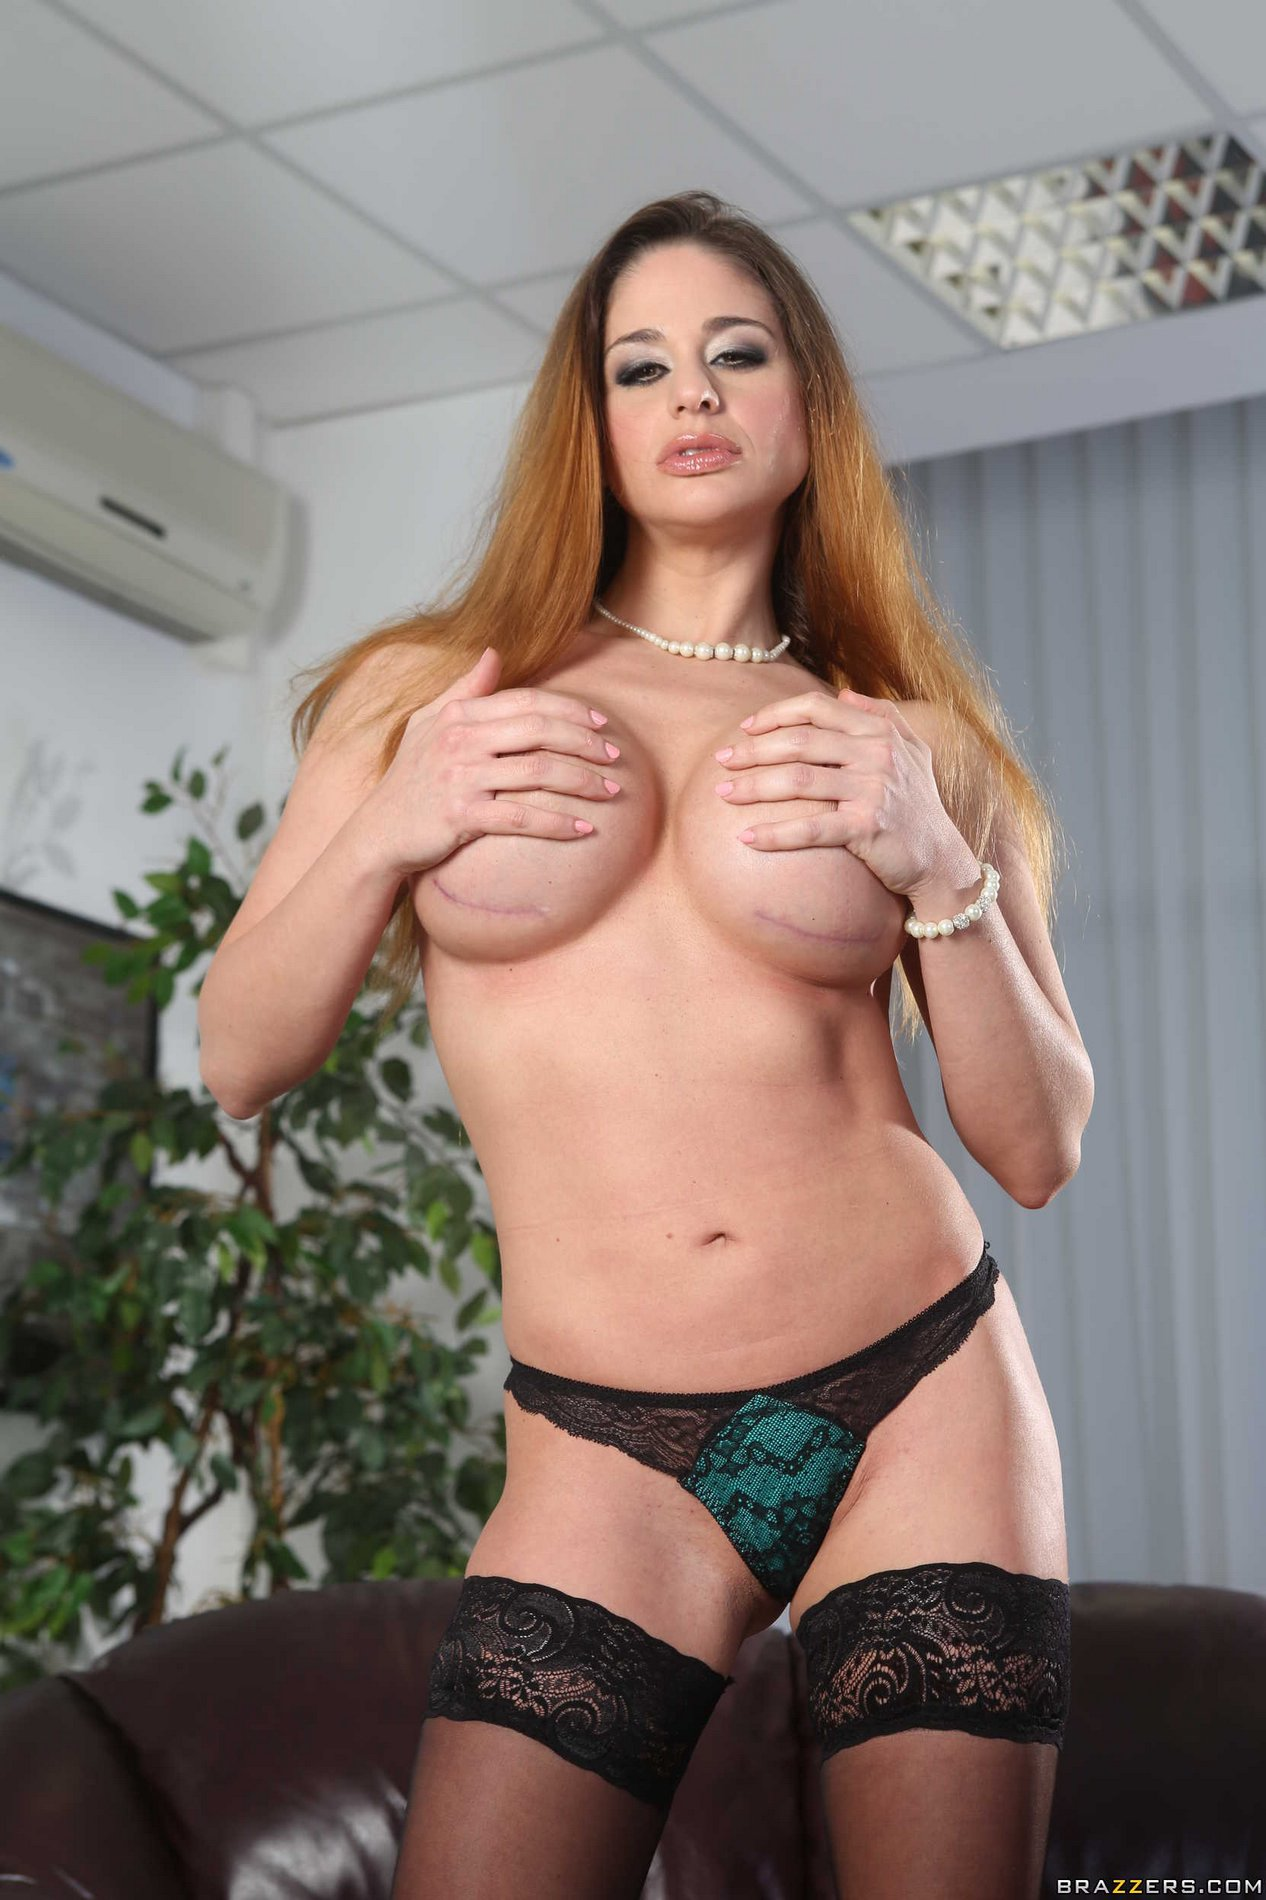 Cathy heaven stockings can not